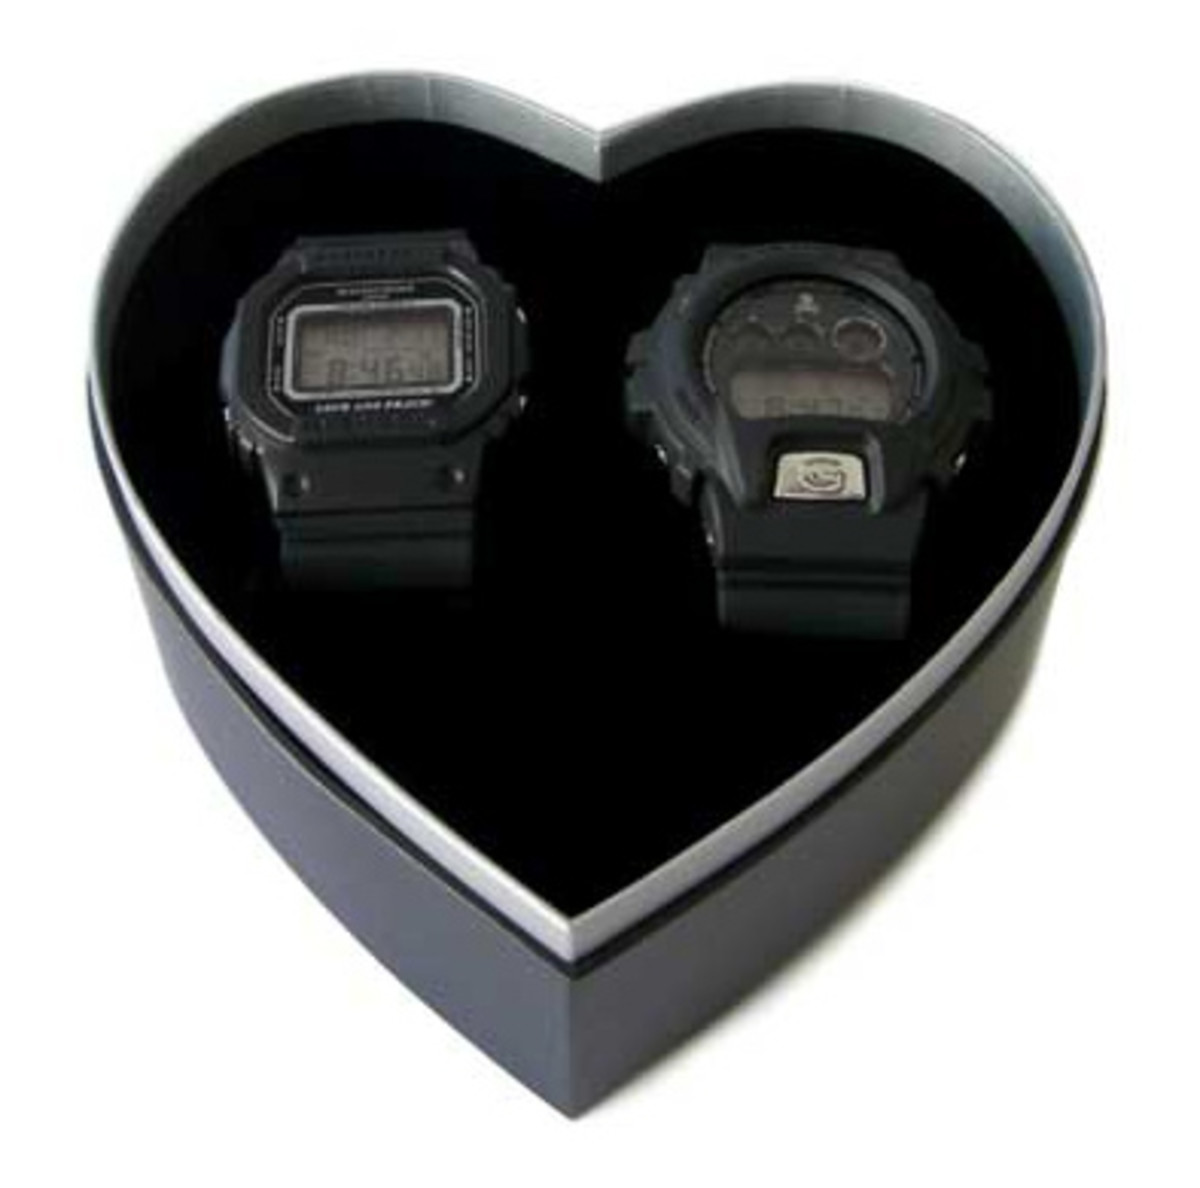 mastermind JAPAN x Casio G-Shock - Valentine's Set - 2